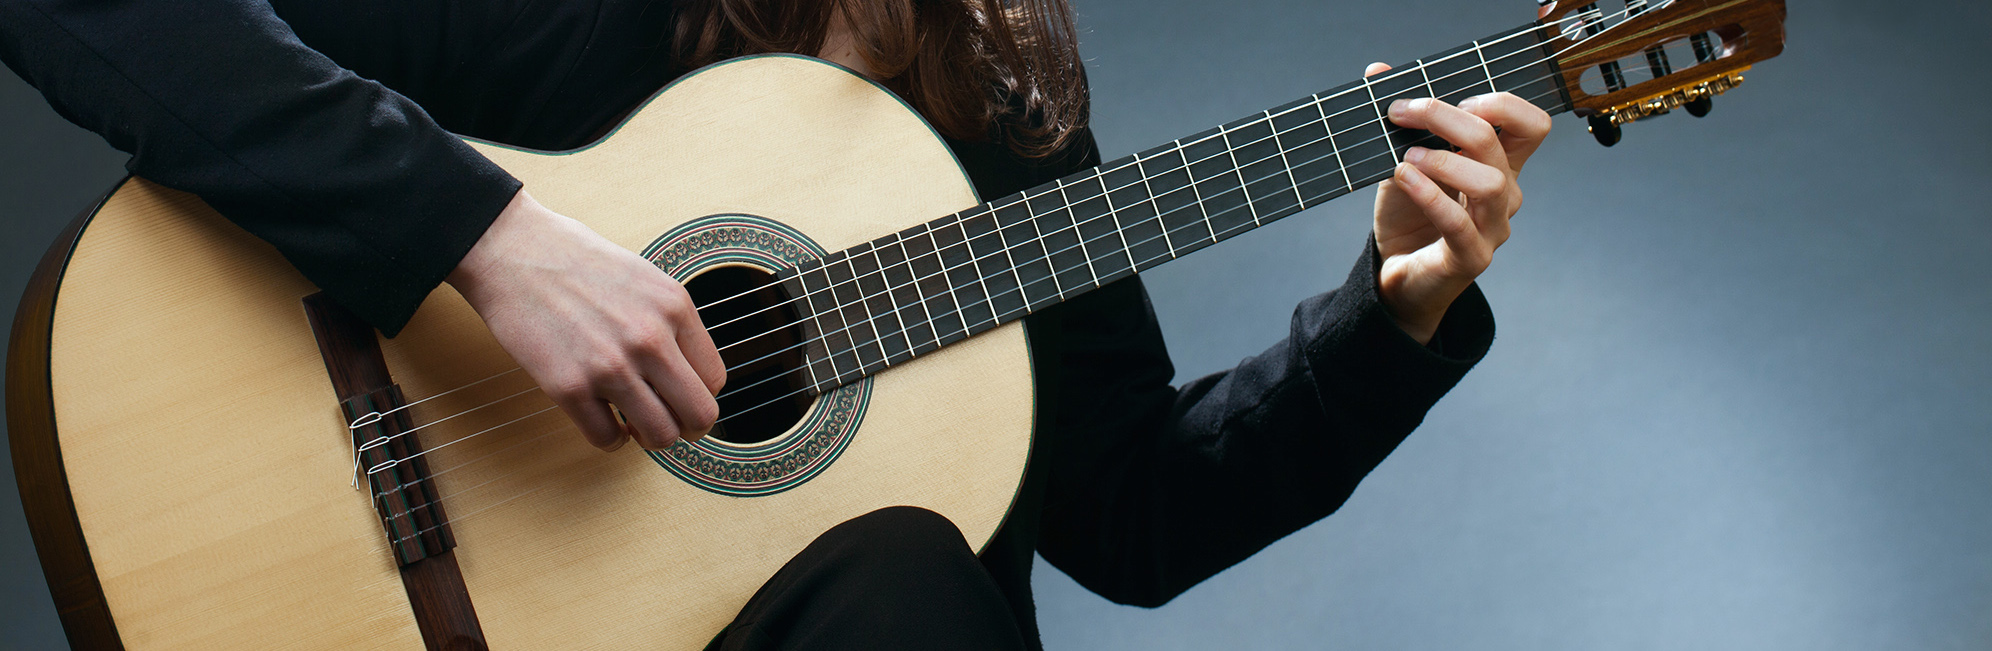 The self-teacher of playing the guitar